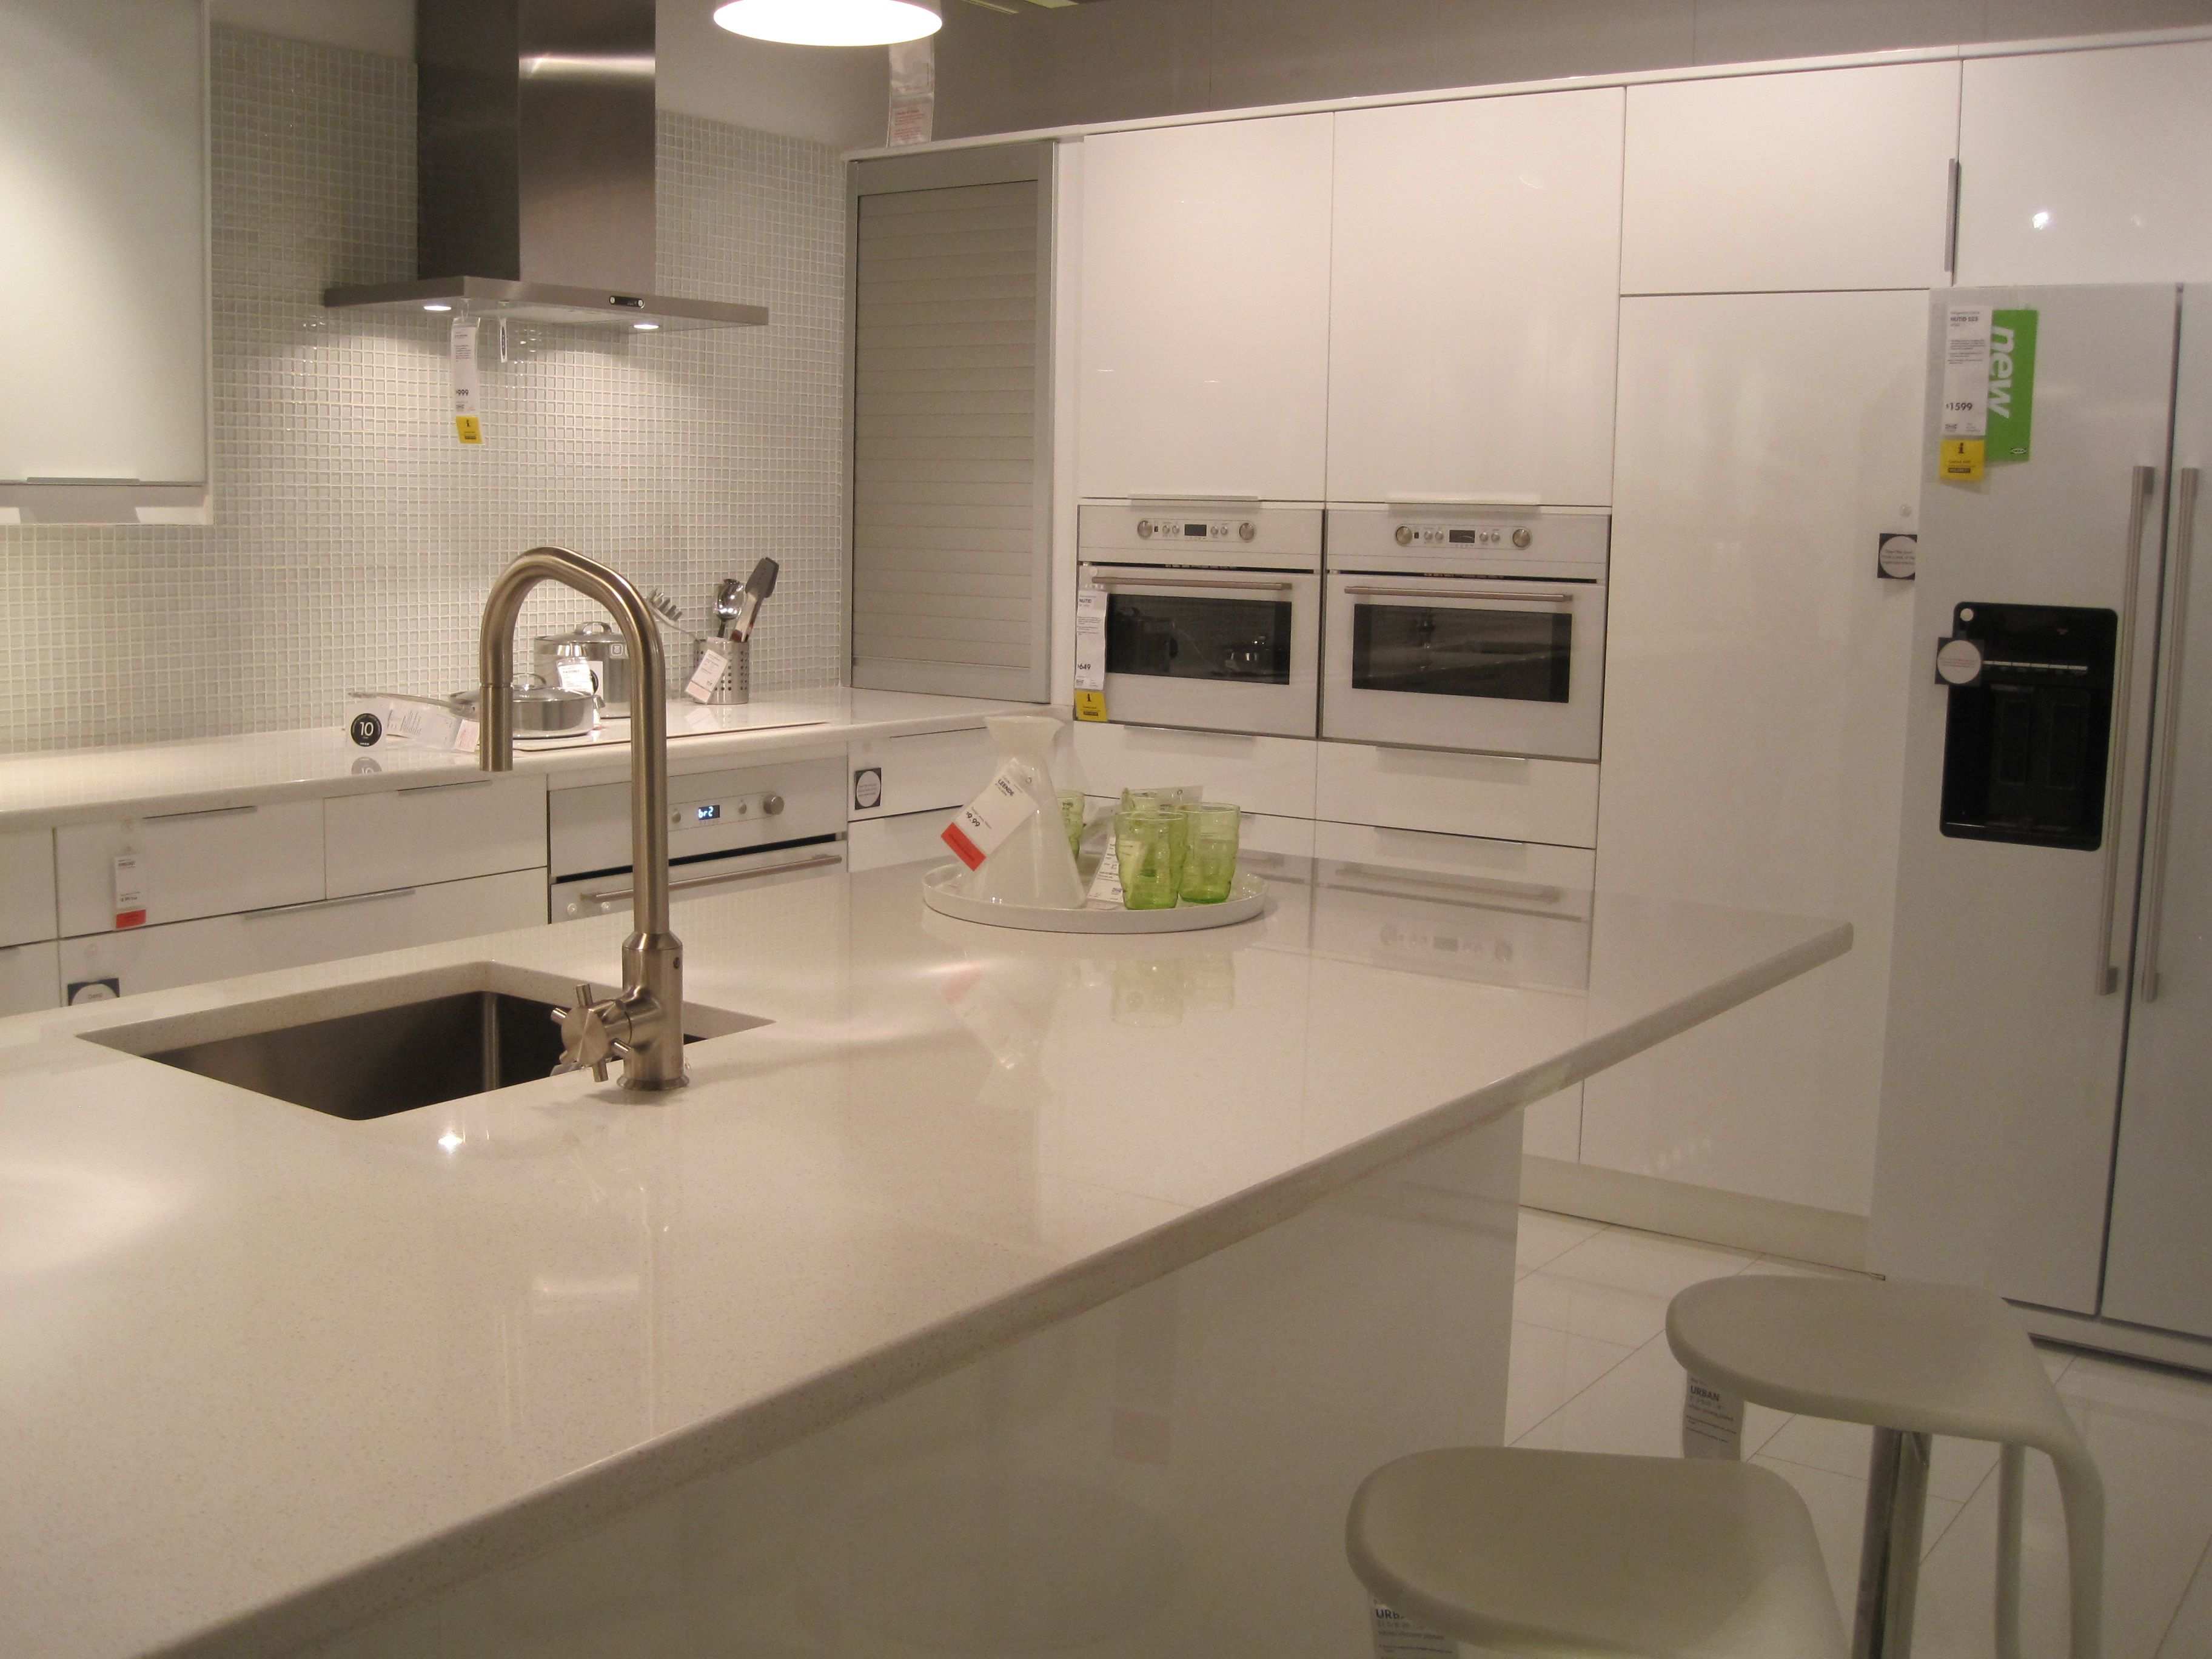 Ikea Open Today Like This High Gloss White Abstrakt Kitchen At Ikea That